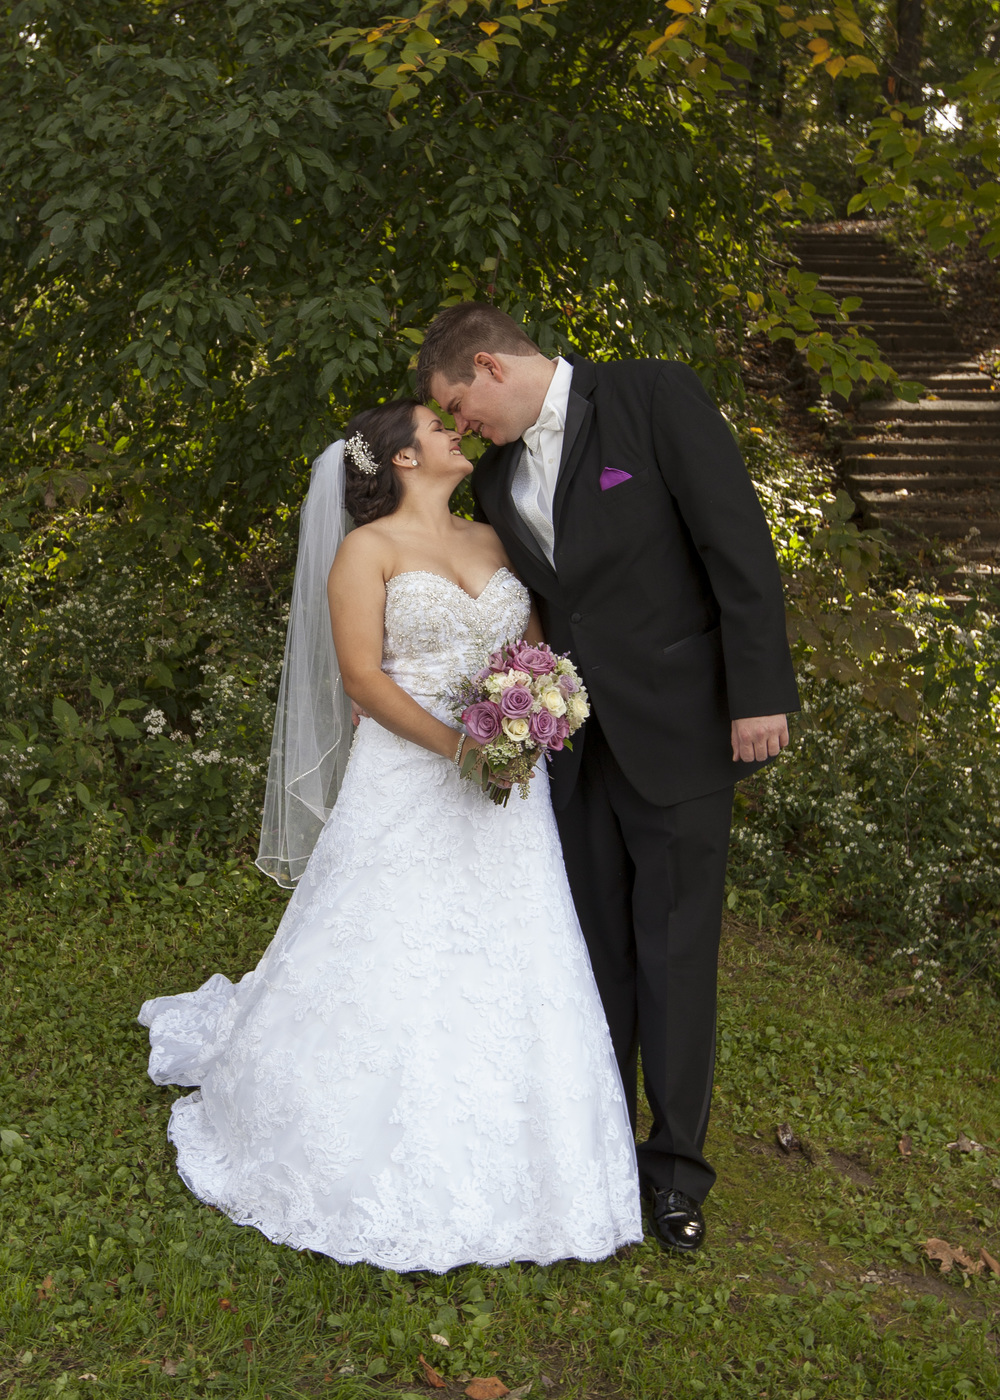 Southern And Central Illinois Wedding Photography Gorgeous Wedding Photography In Southern